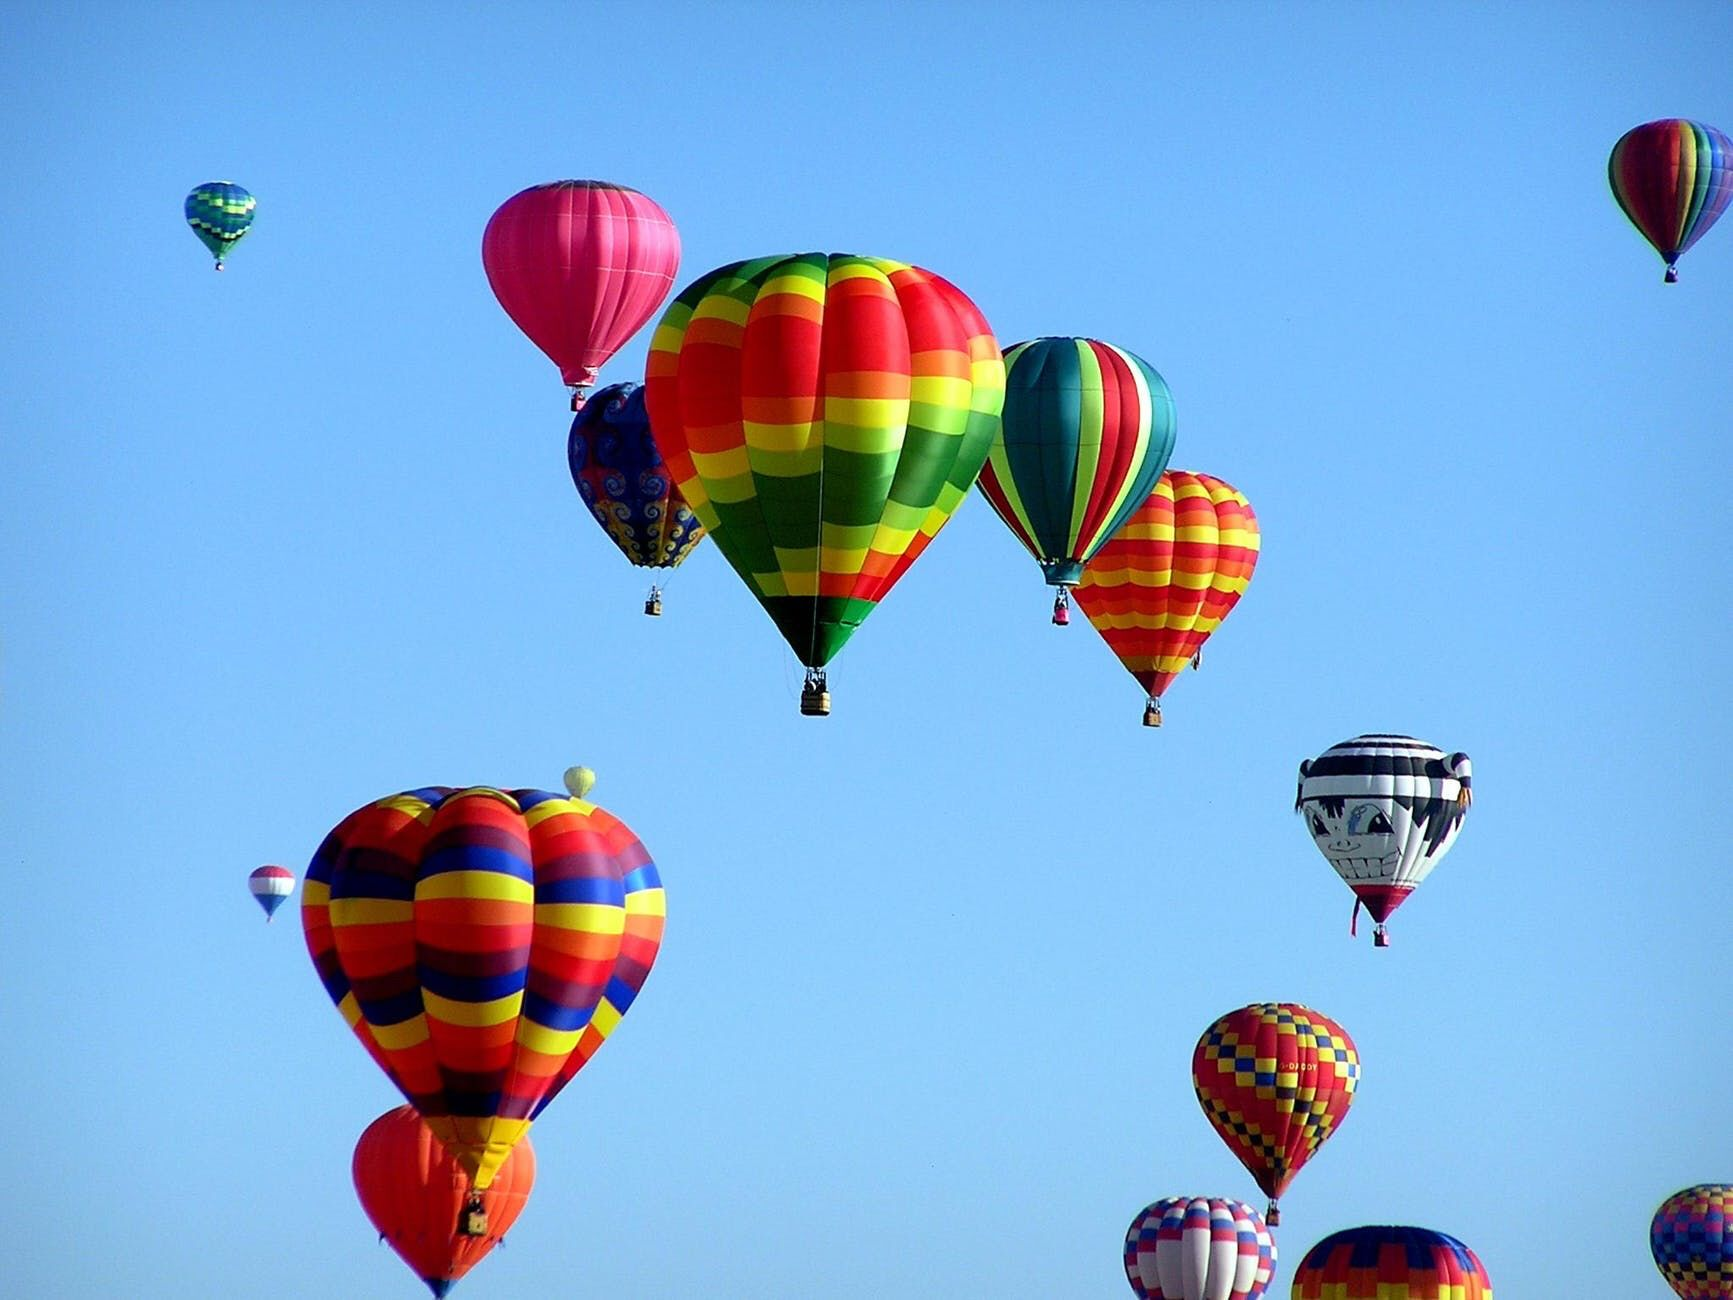 Pin by love2you2day on фтш in 2020 Hot air balloon